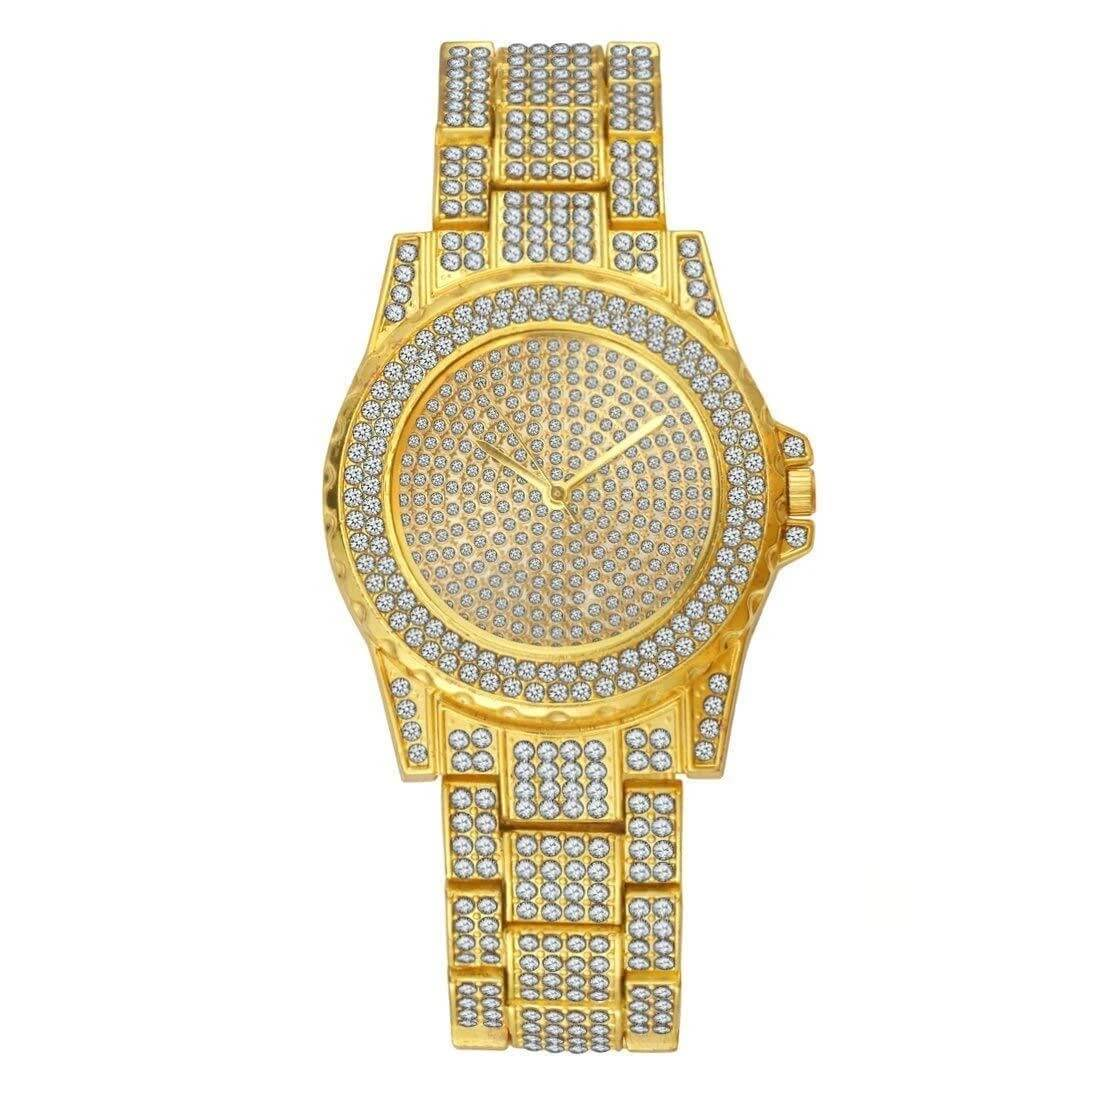 GM-9016 Iced watch Luxury for men